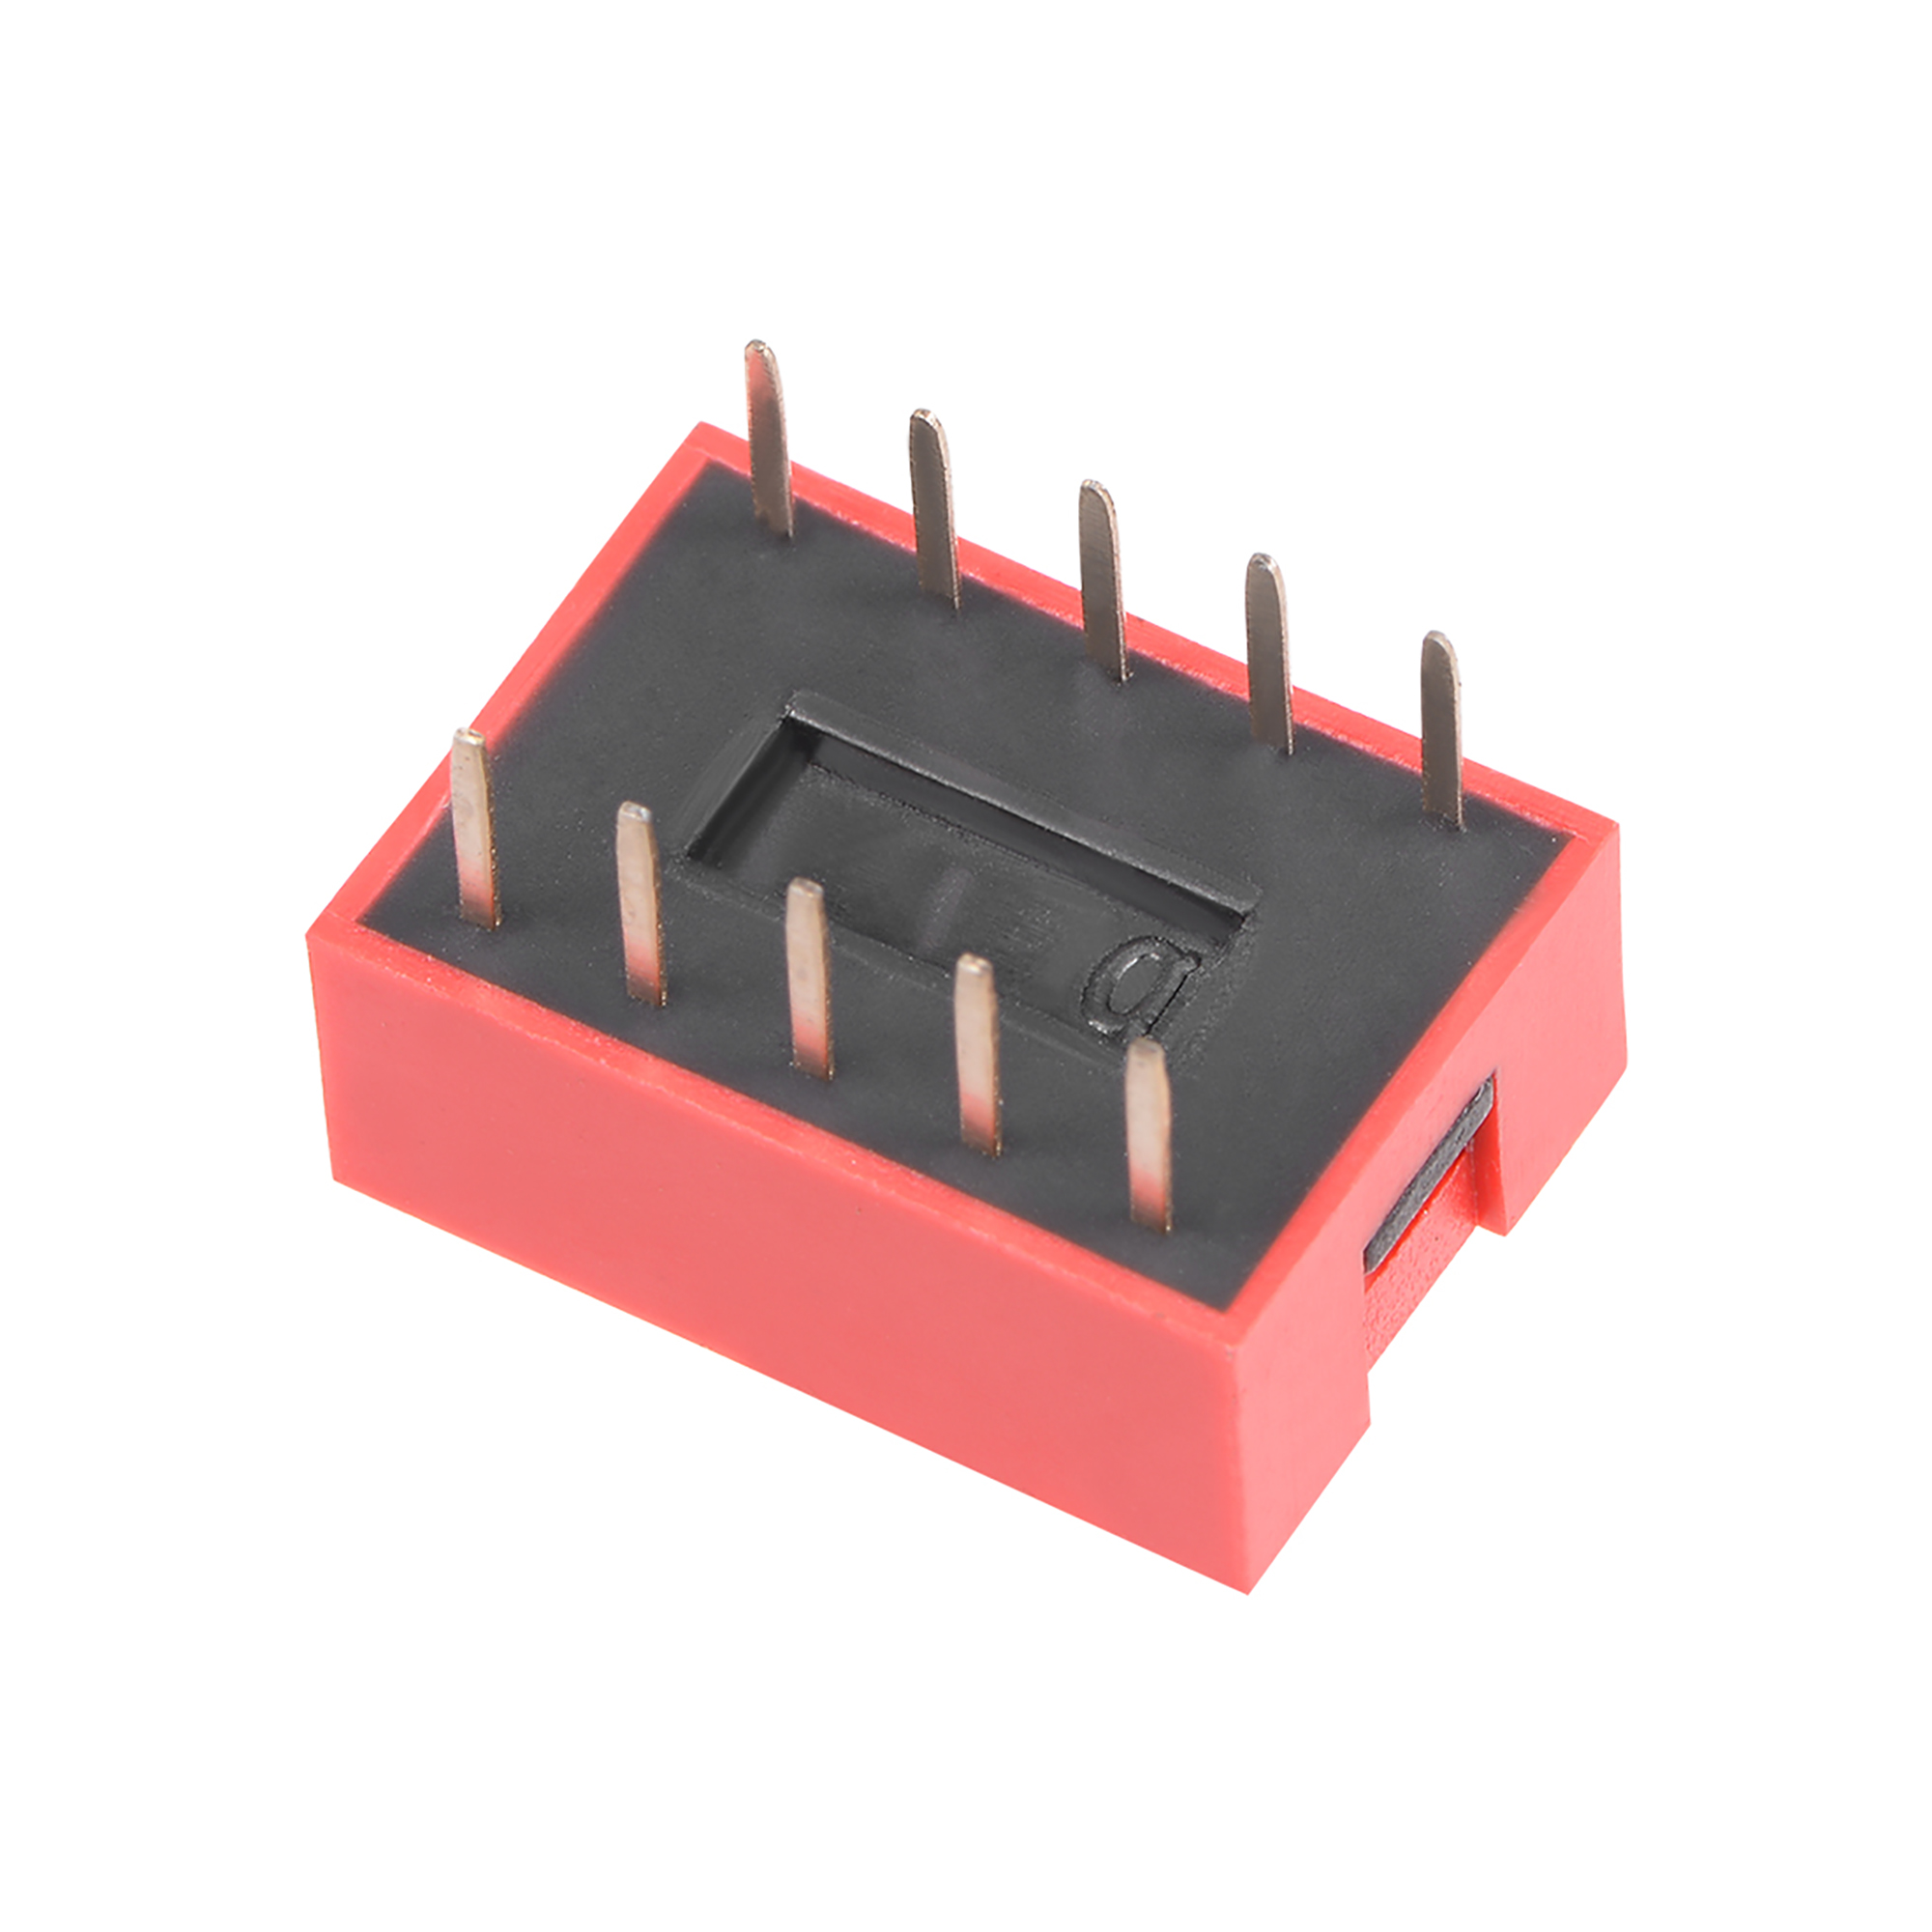 20Pcs Red DIP Switch Horizontal 1-5 Positions 2.54mm Pitch for Circuit Breadboards PCB - image 2 of 3